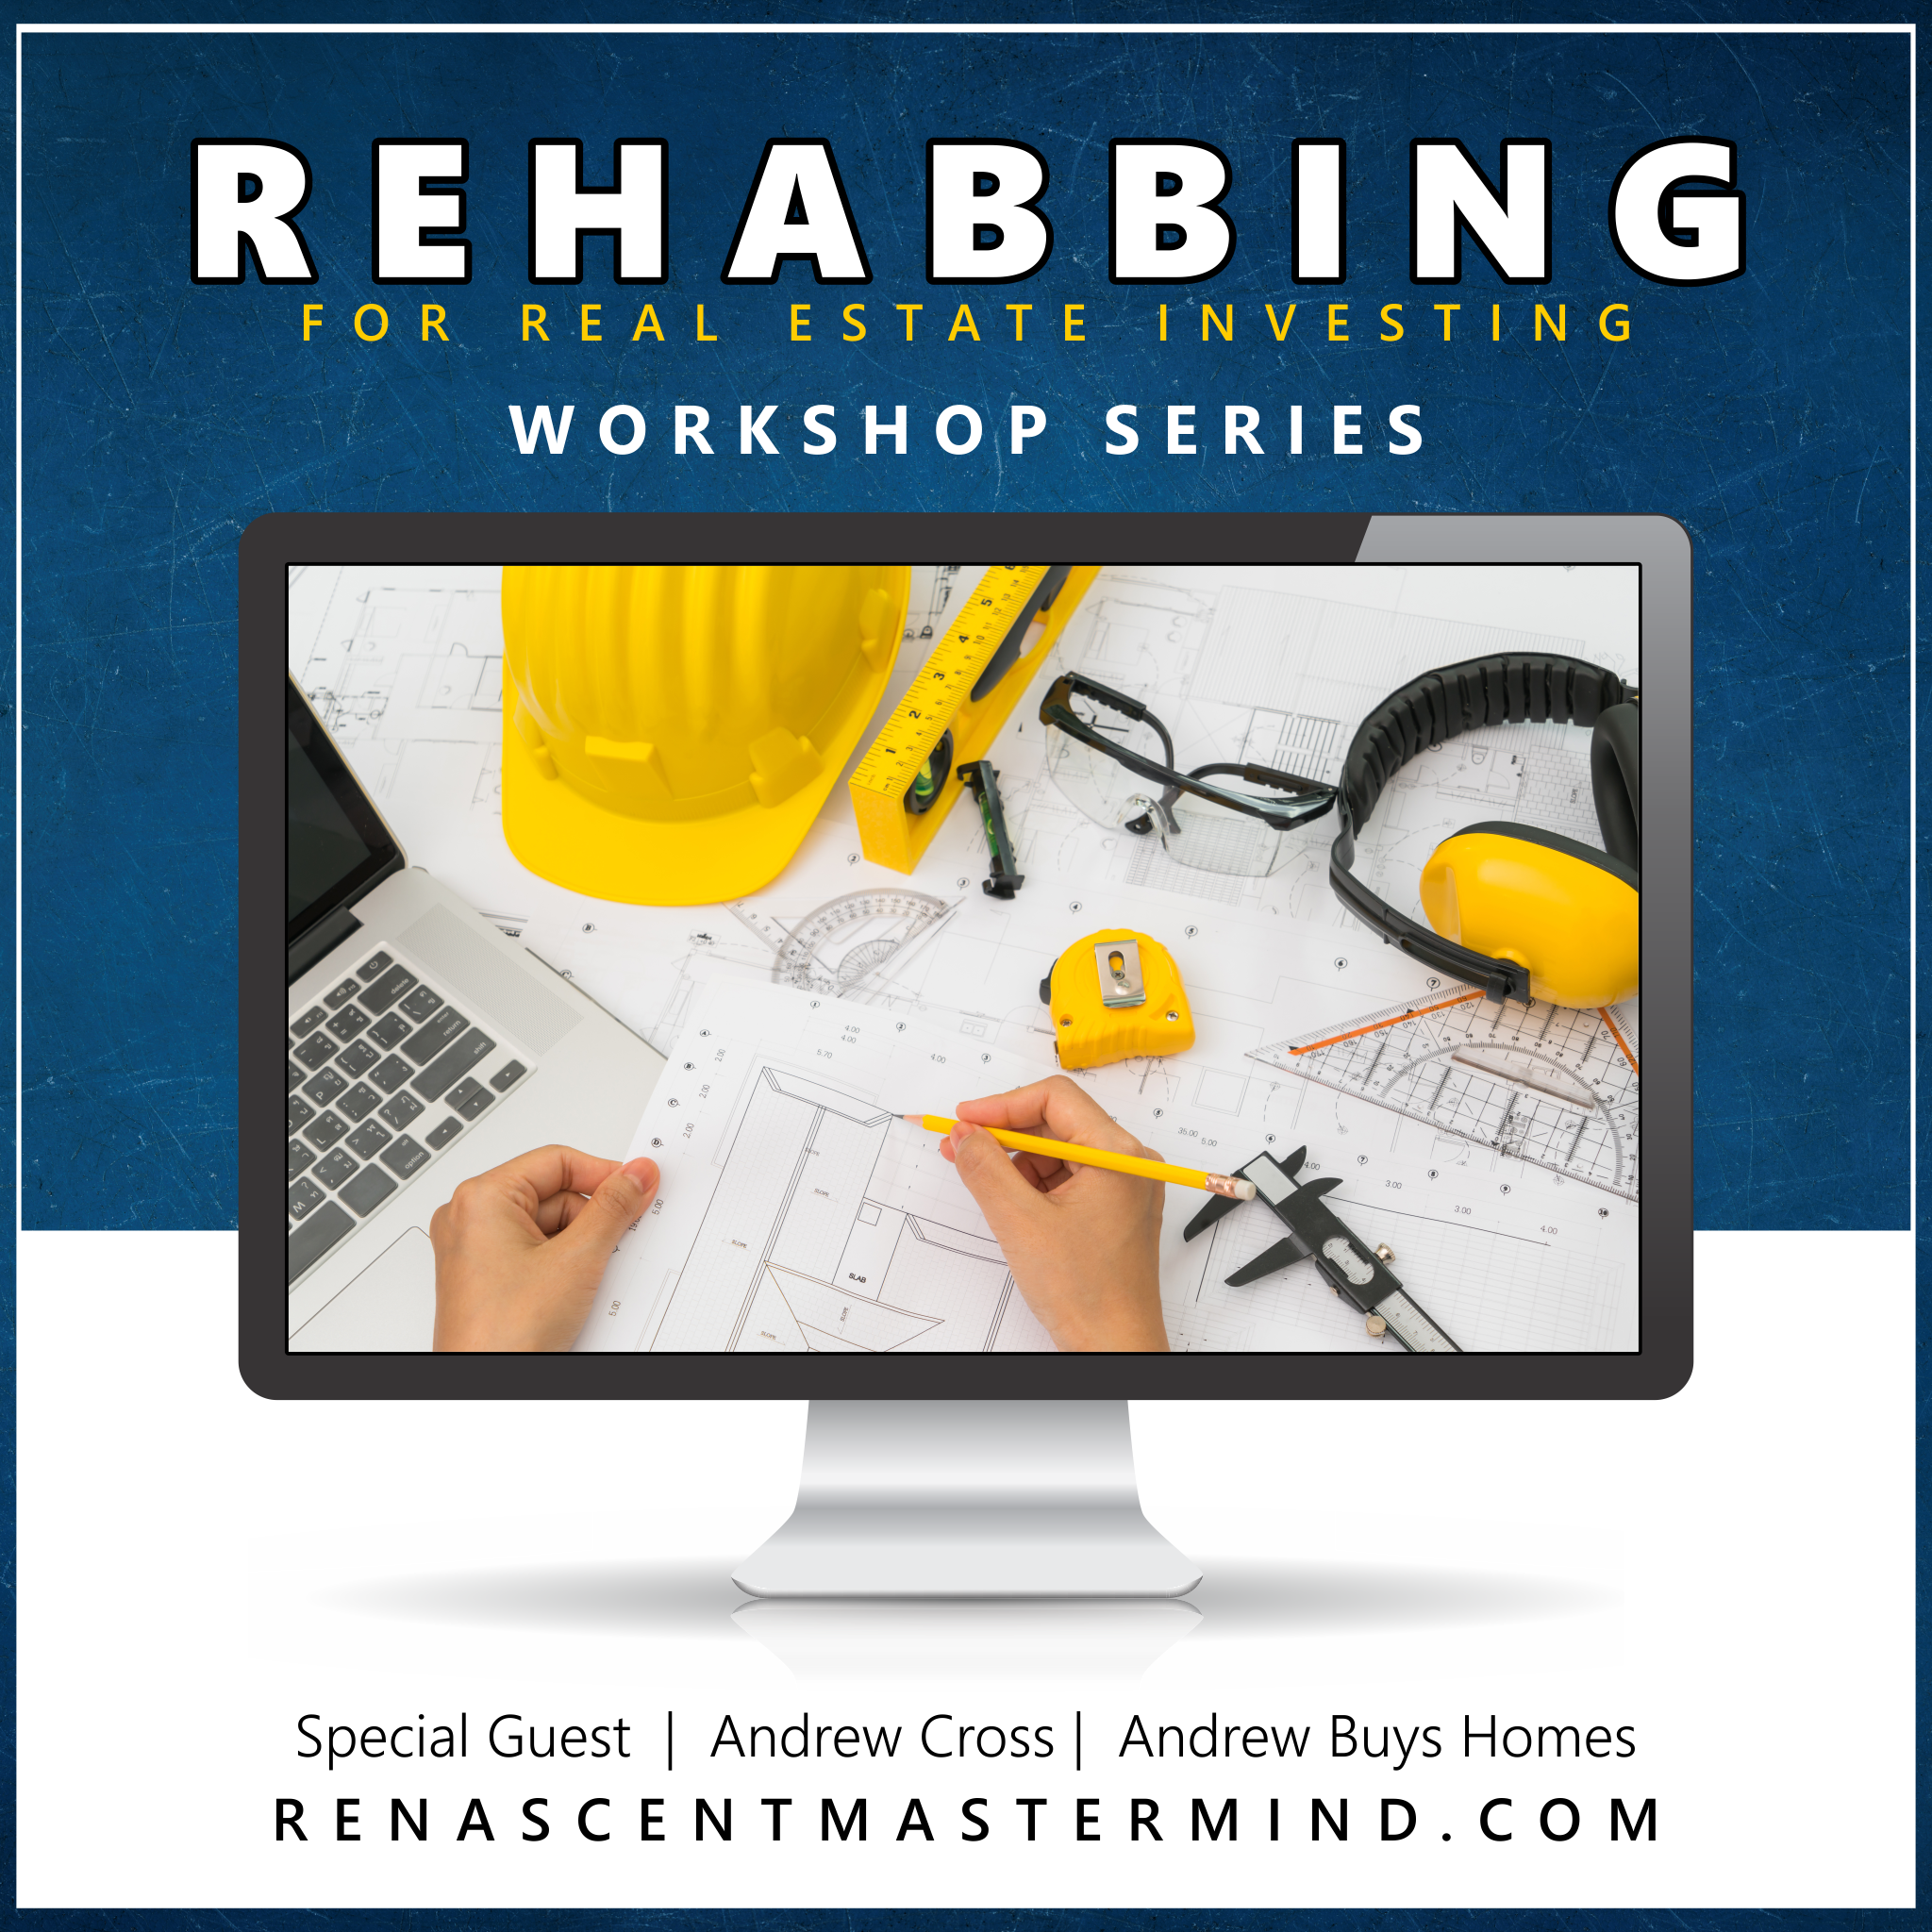 Rehabbing Houses | Workshop Series with Renascent Mastermind